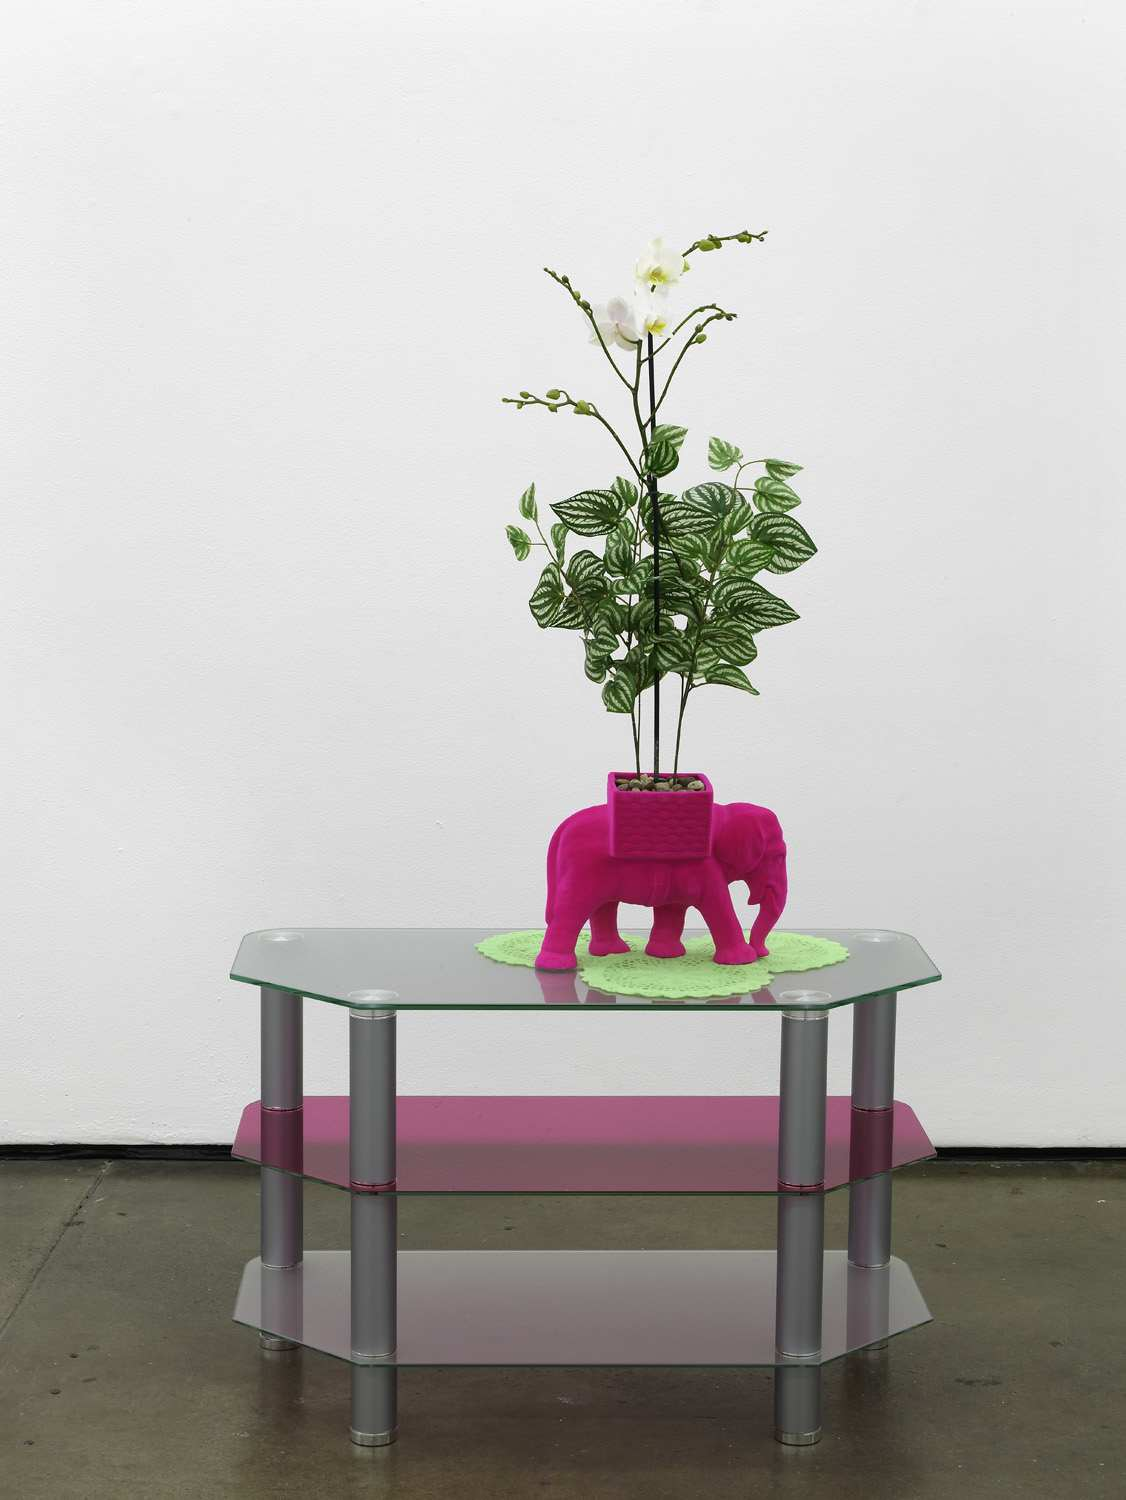 Matthew Darbyshire Untitled Homeware No. 14 2011 fuchsia flocked elephant planter, lime flocked doilies, artificial orchid, coloured glass gels, glass and steel support:140 x 80 x 40 cm